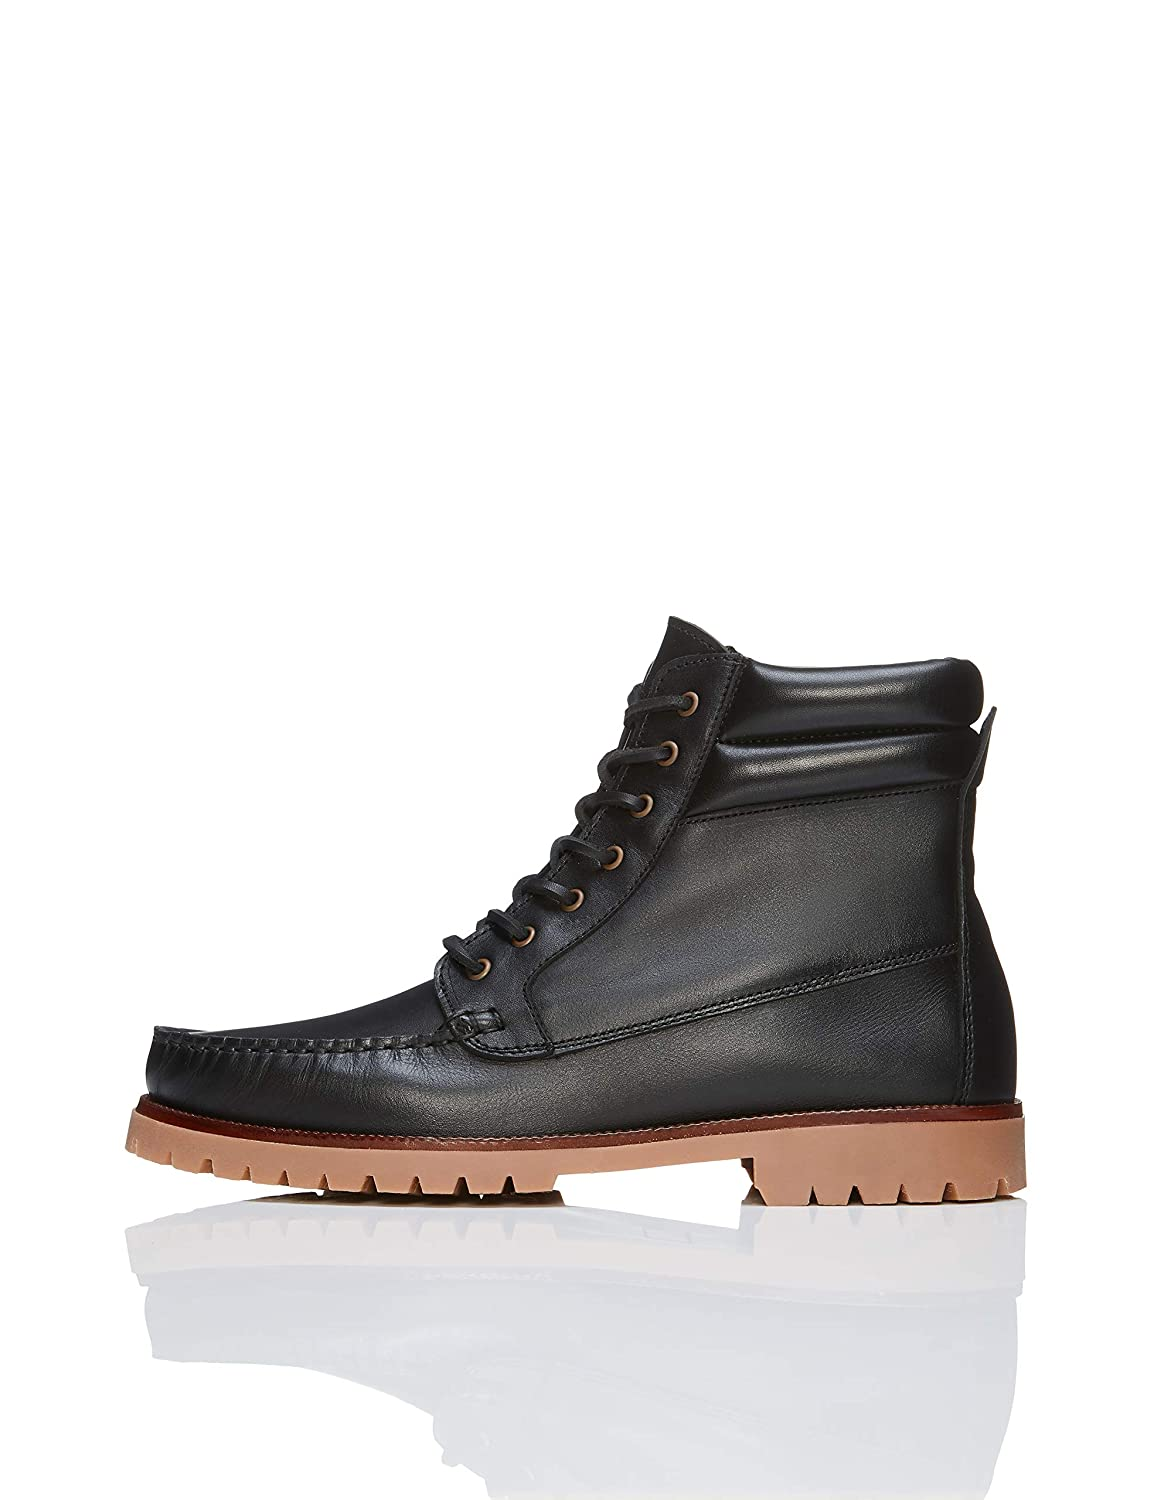 TALLA 43 EU. Marca Amazon - find. Leather Boat, Botas Chukka Hombre